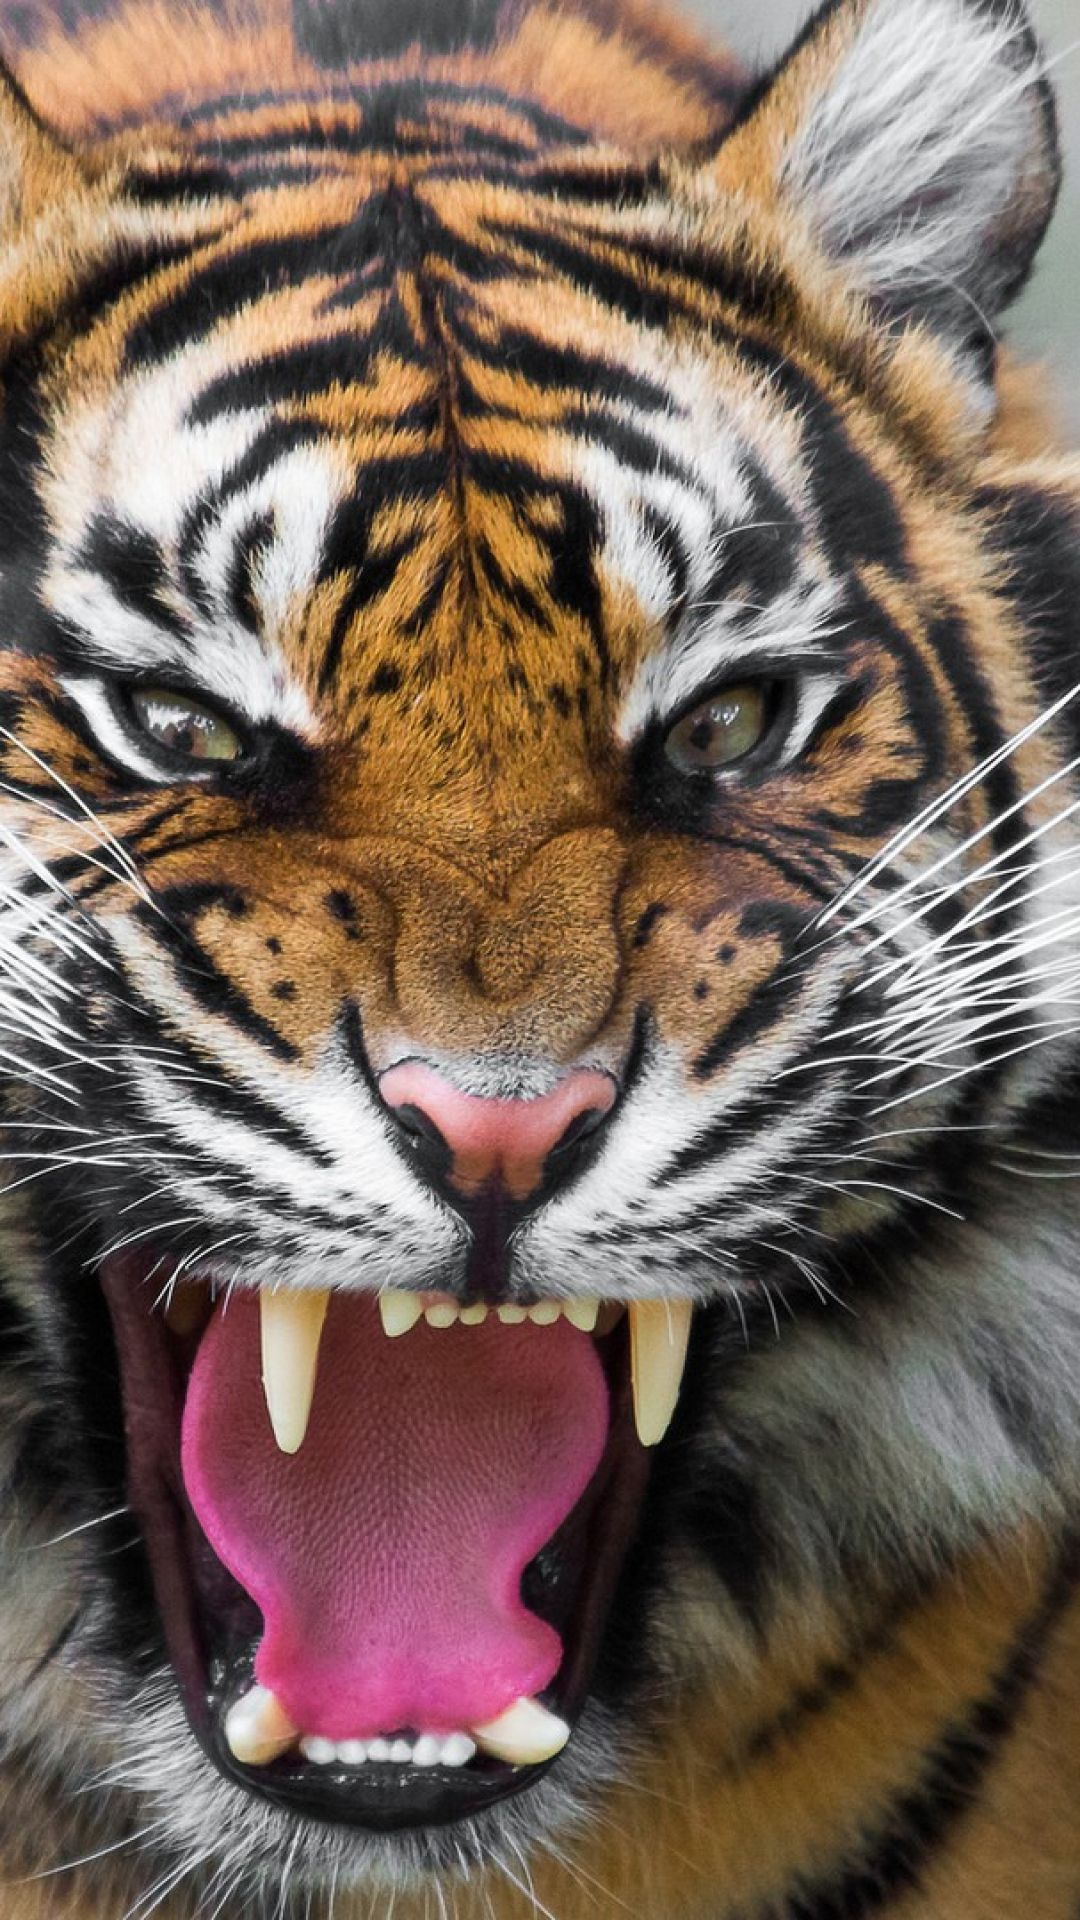 tiger, face, teeth, anger, big cat Animaux sauvages